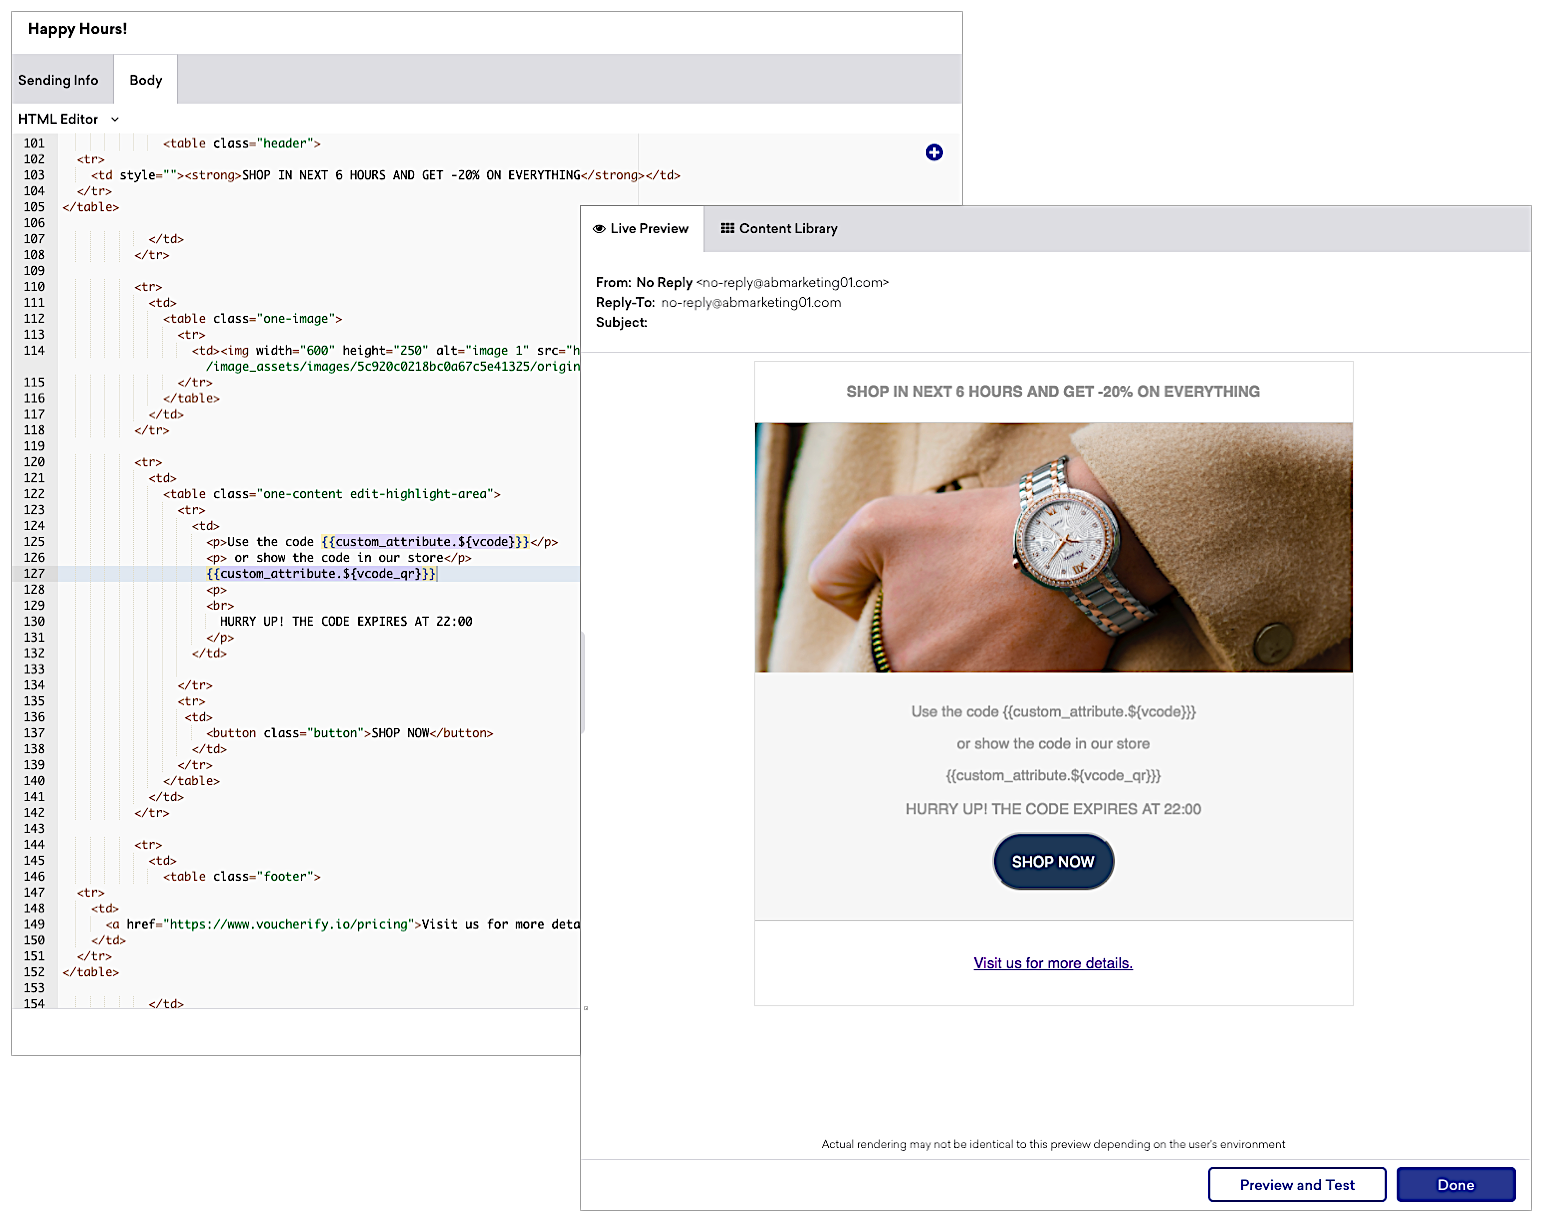 Use Braze Connected Content or Custom Attributes to send codes from Voucherify to customer profiles in Braze